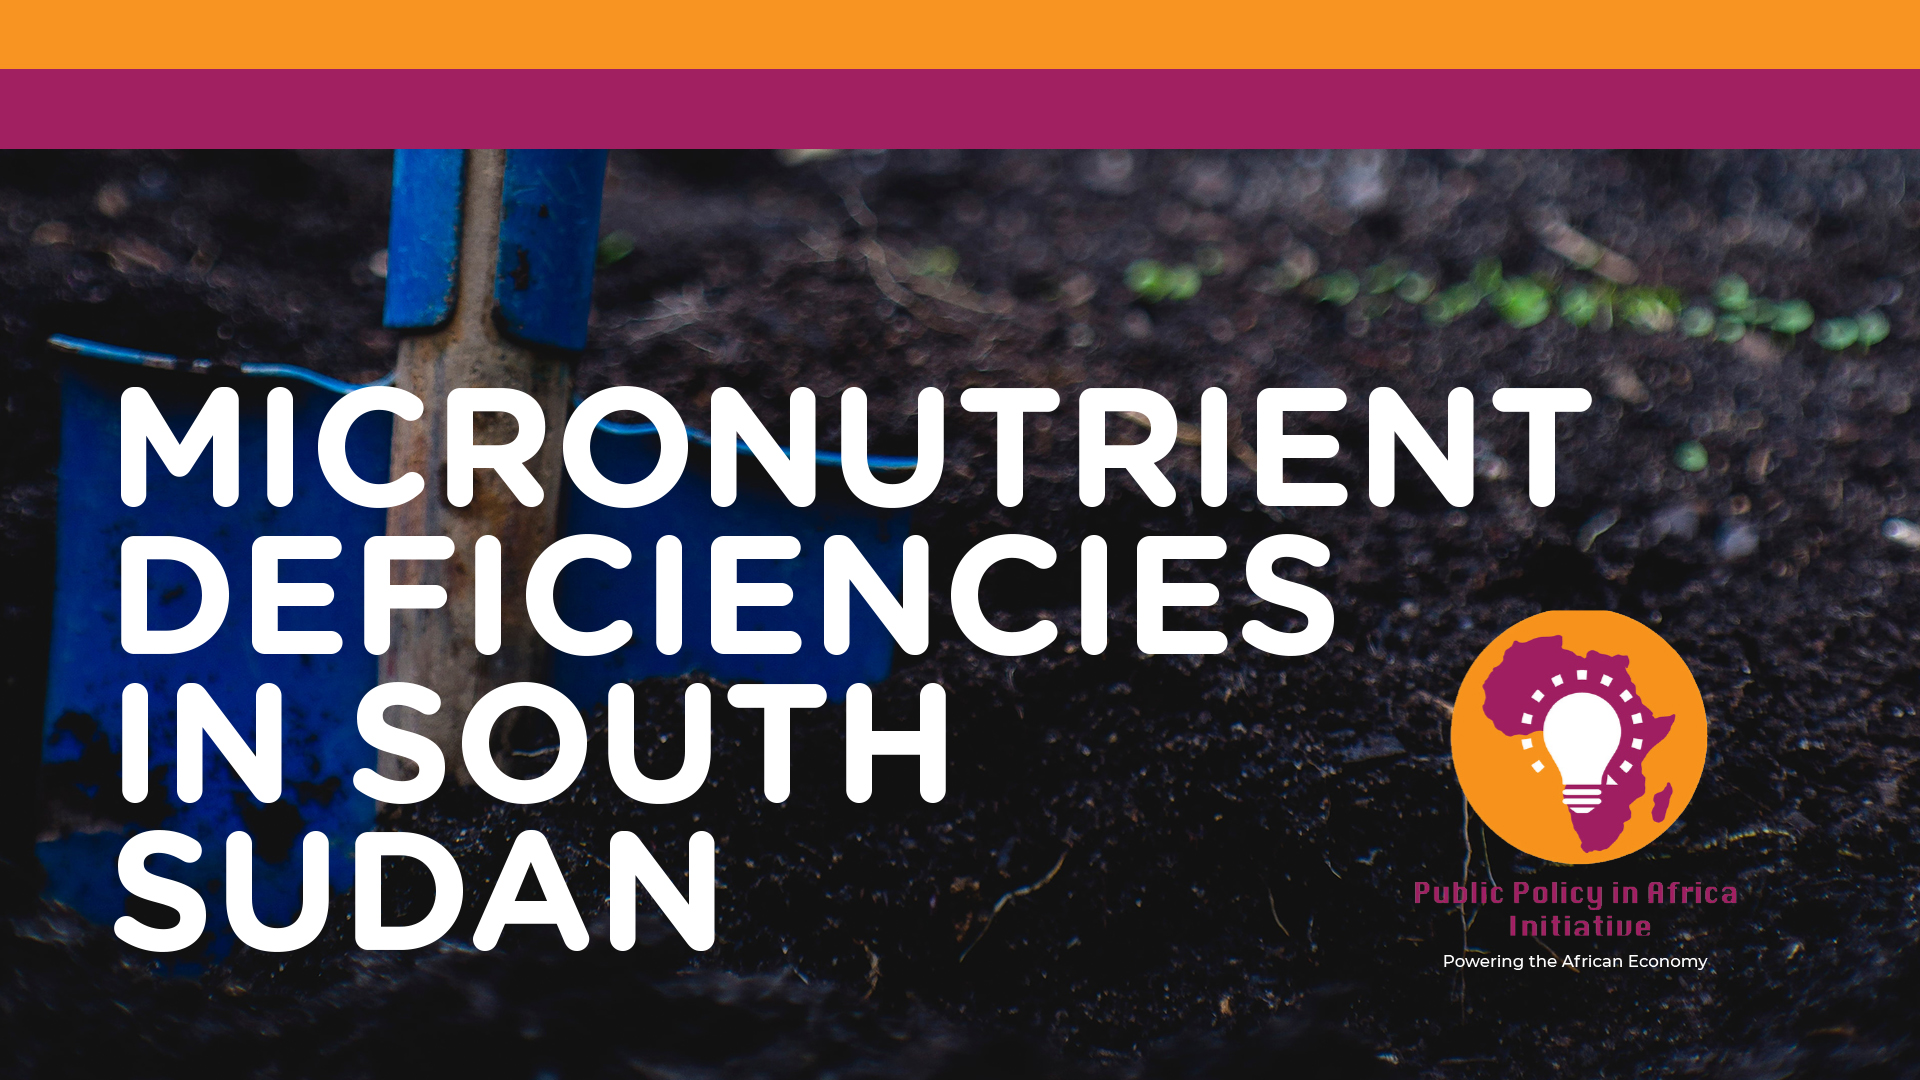 Micronutrient Deficiencies in South Sudan | A Policy Paper by Benita Kayembe